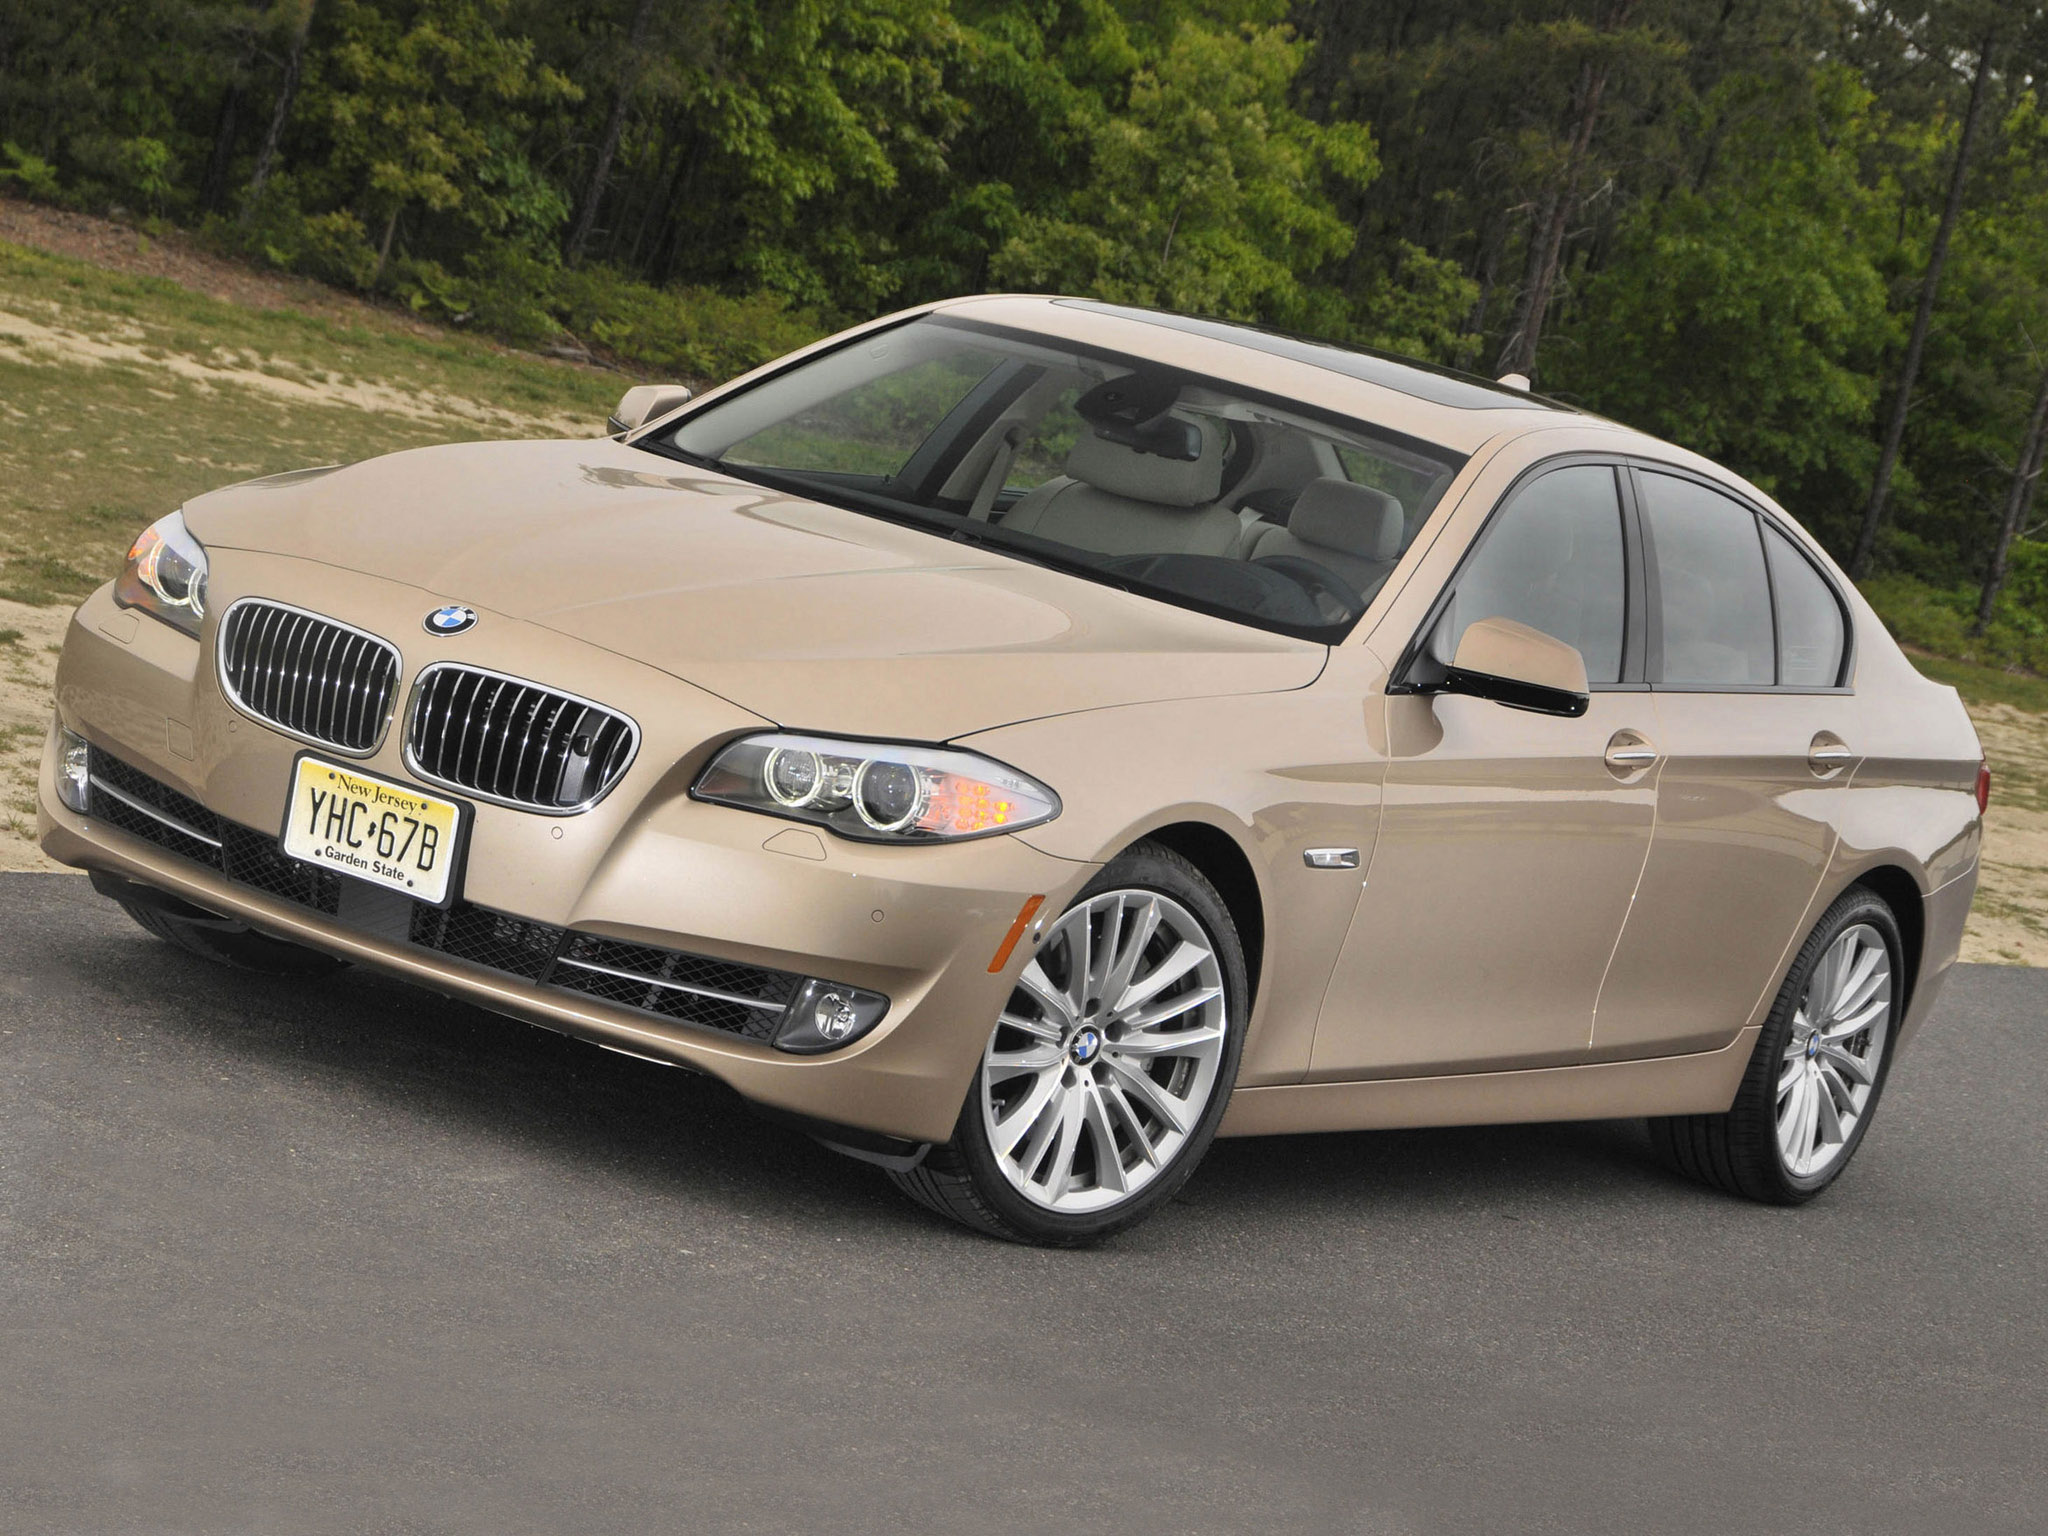 bmw 5 series 550i sedan usa f10 2010 bmw 5 series 550i sedan usa f10 2010 photo 07 car in. Black Bedroom Furniture Sets. Home Design Ideas